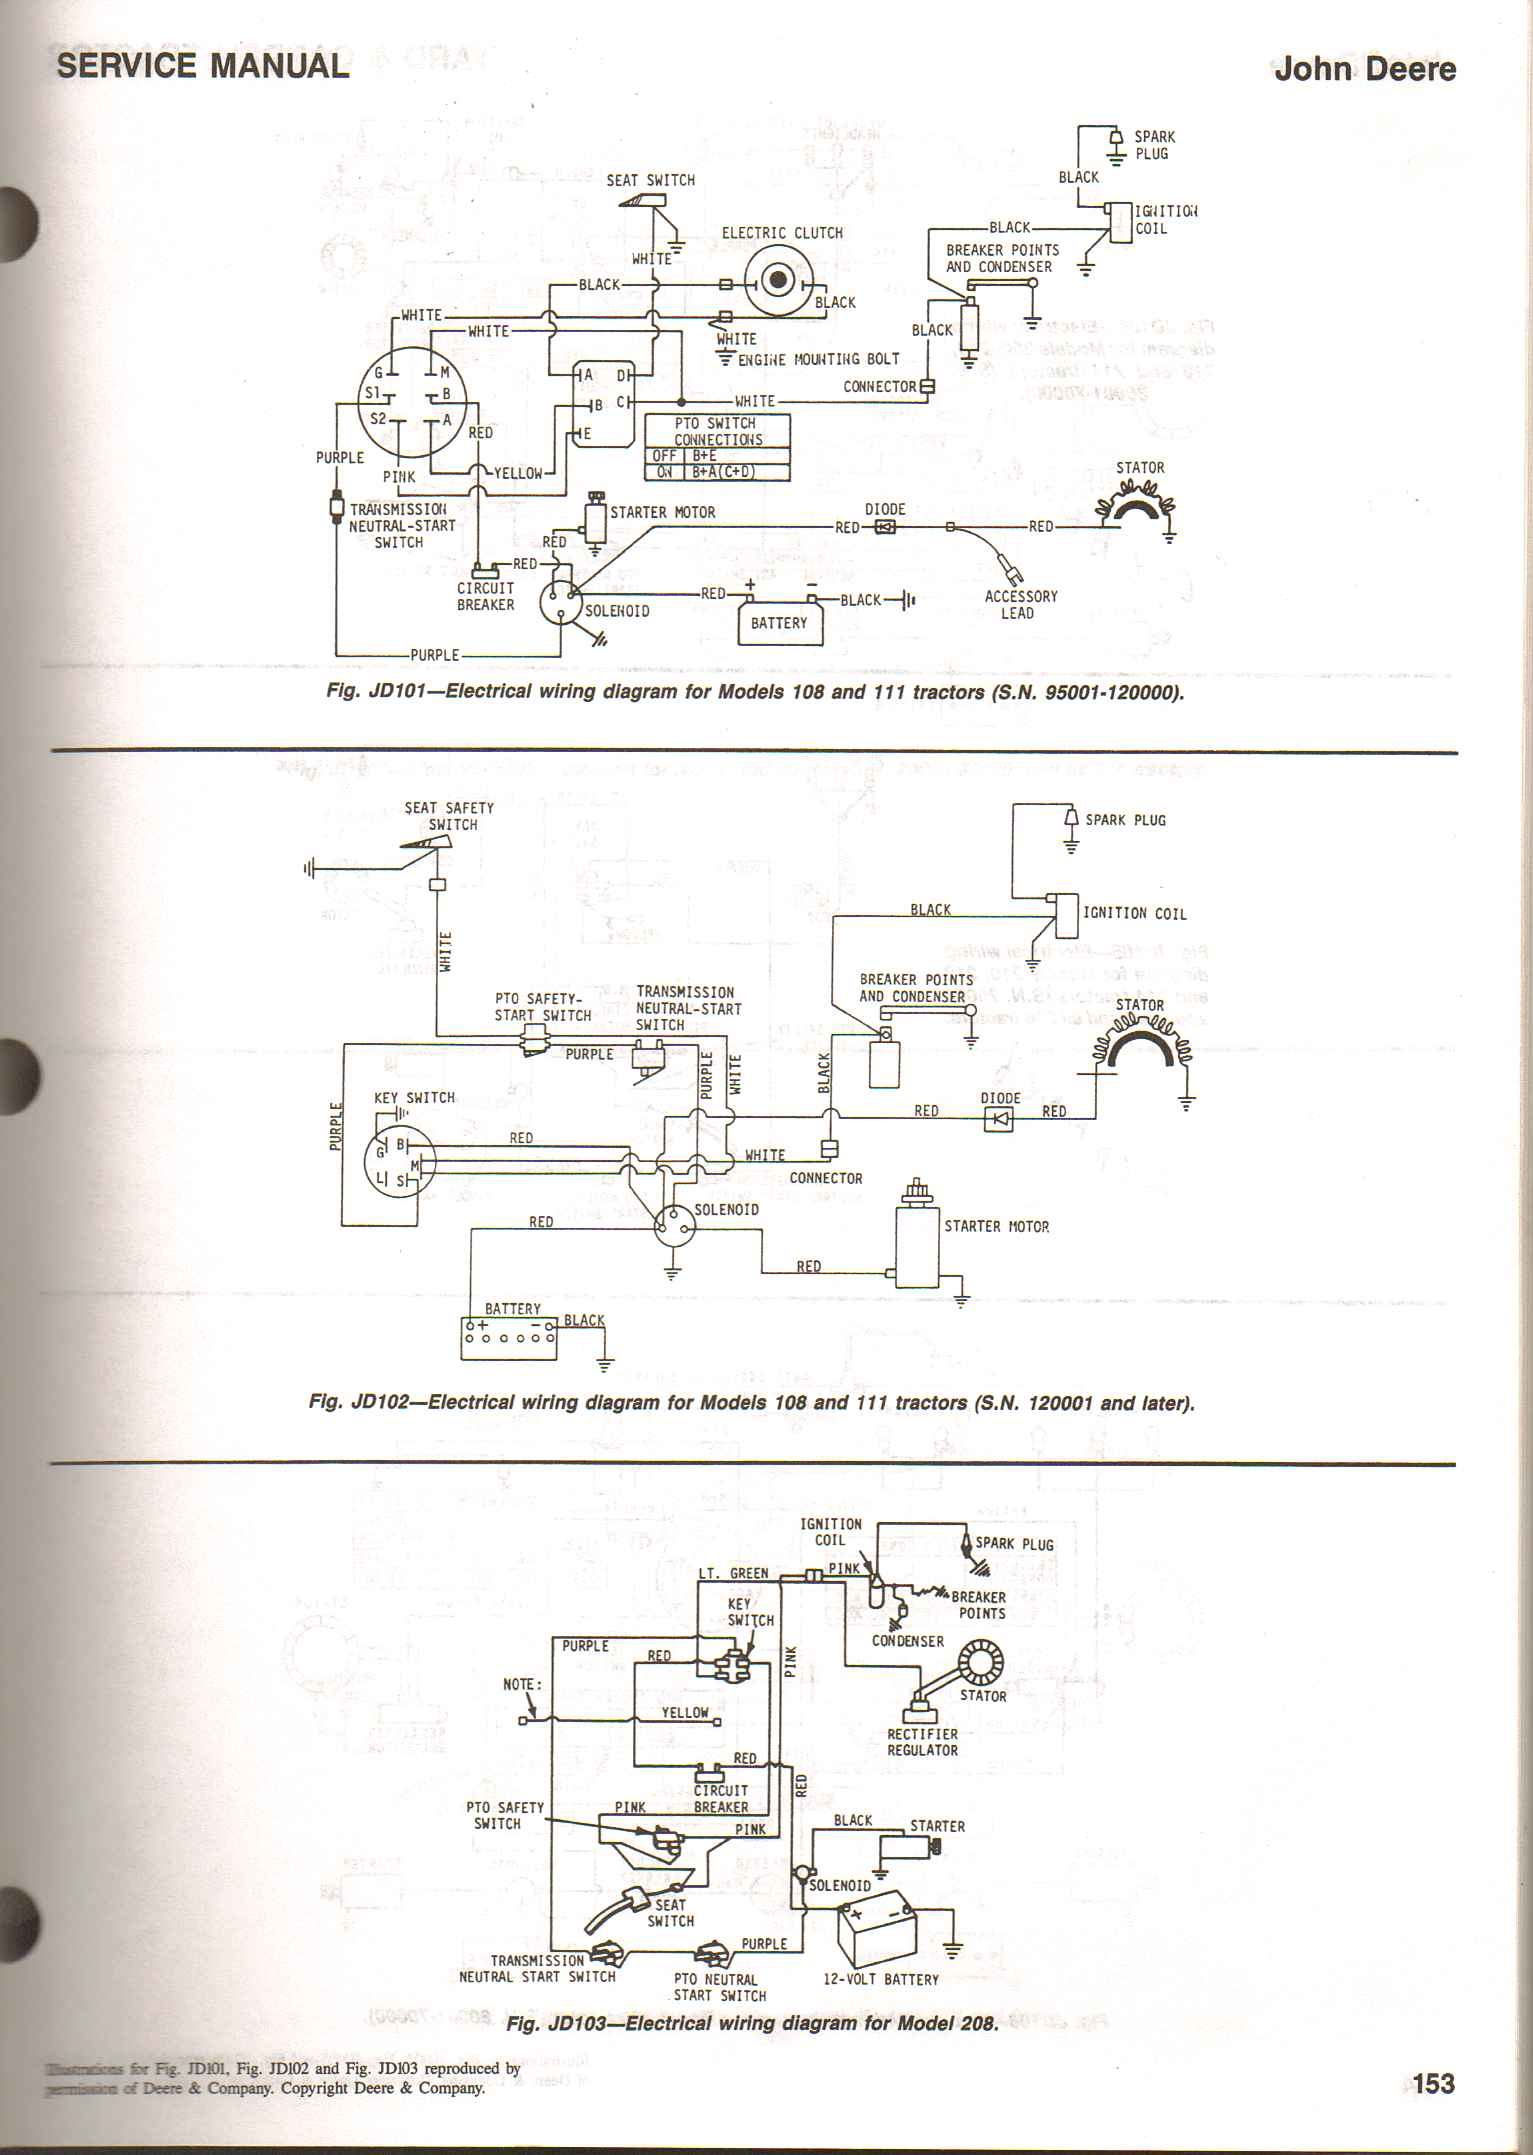 Points And Condenser Wiring Diagram from schematron.org